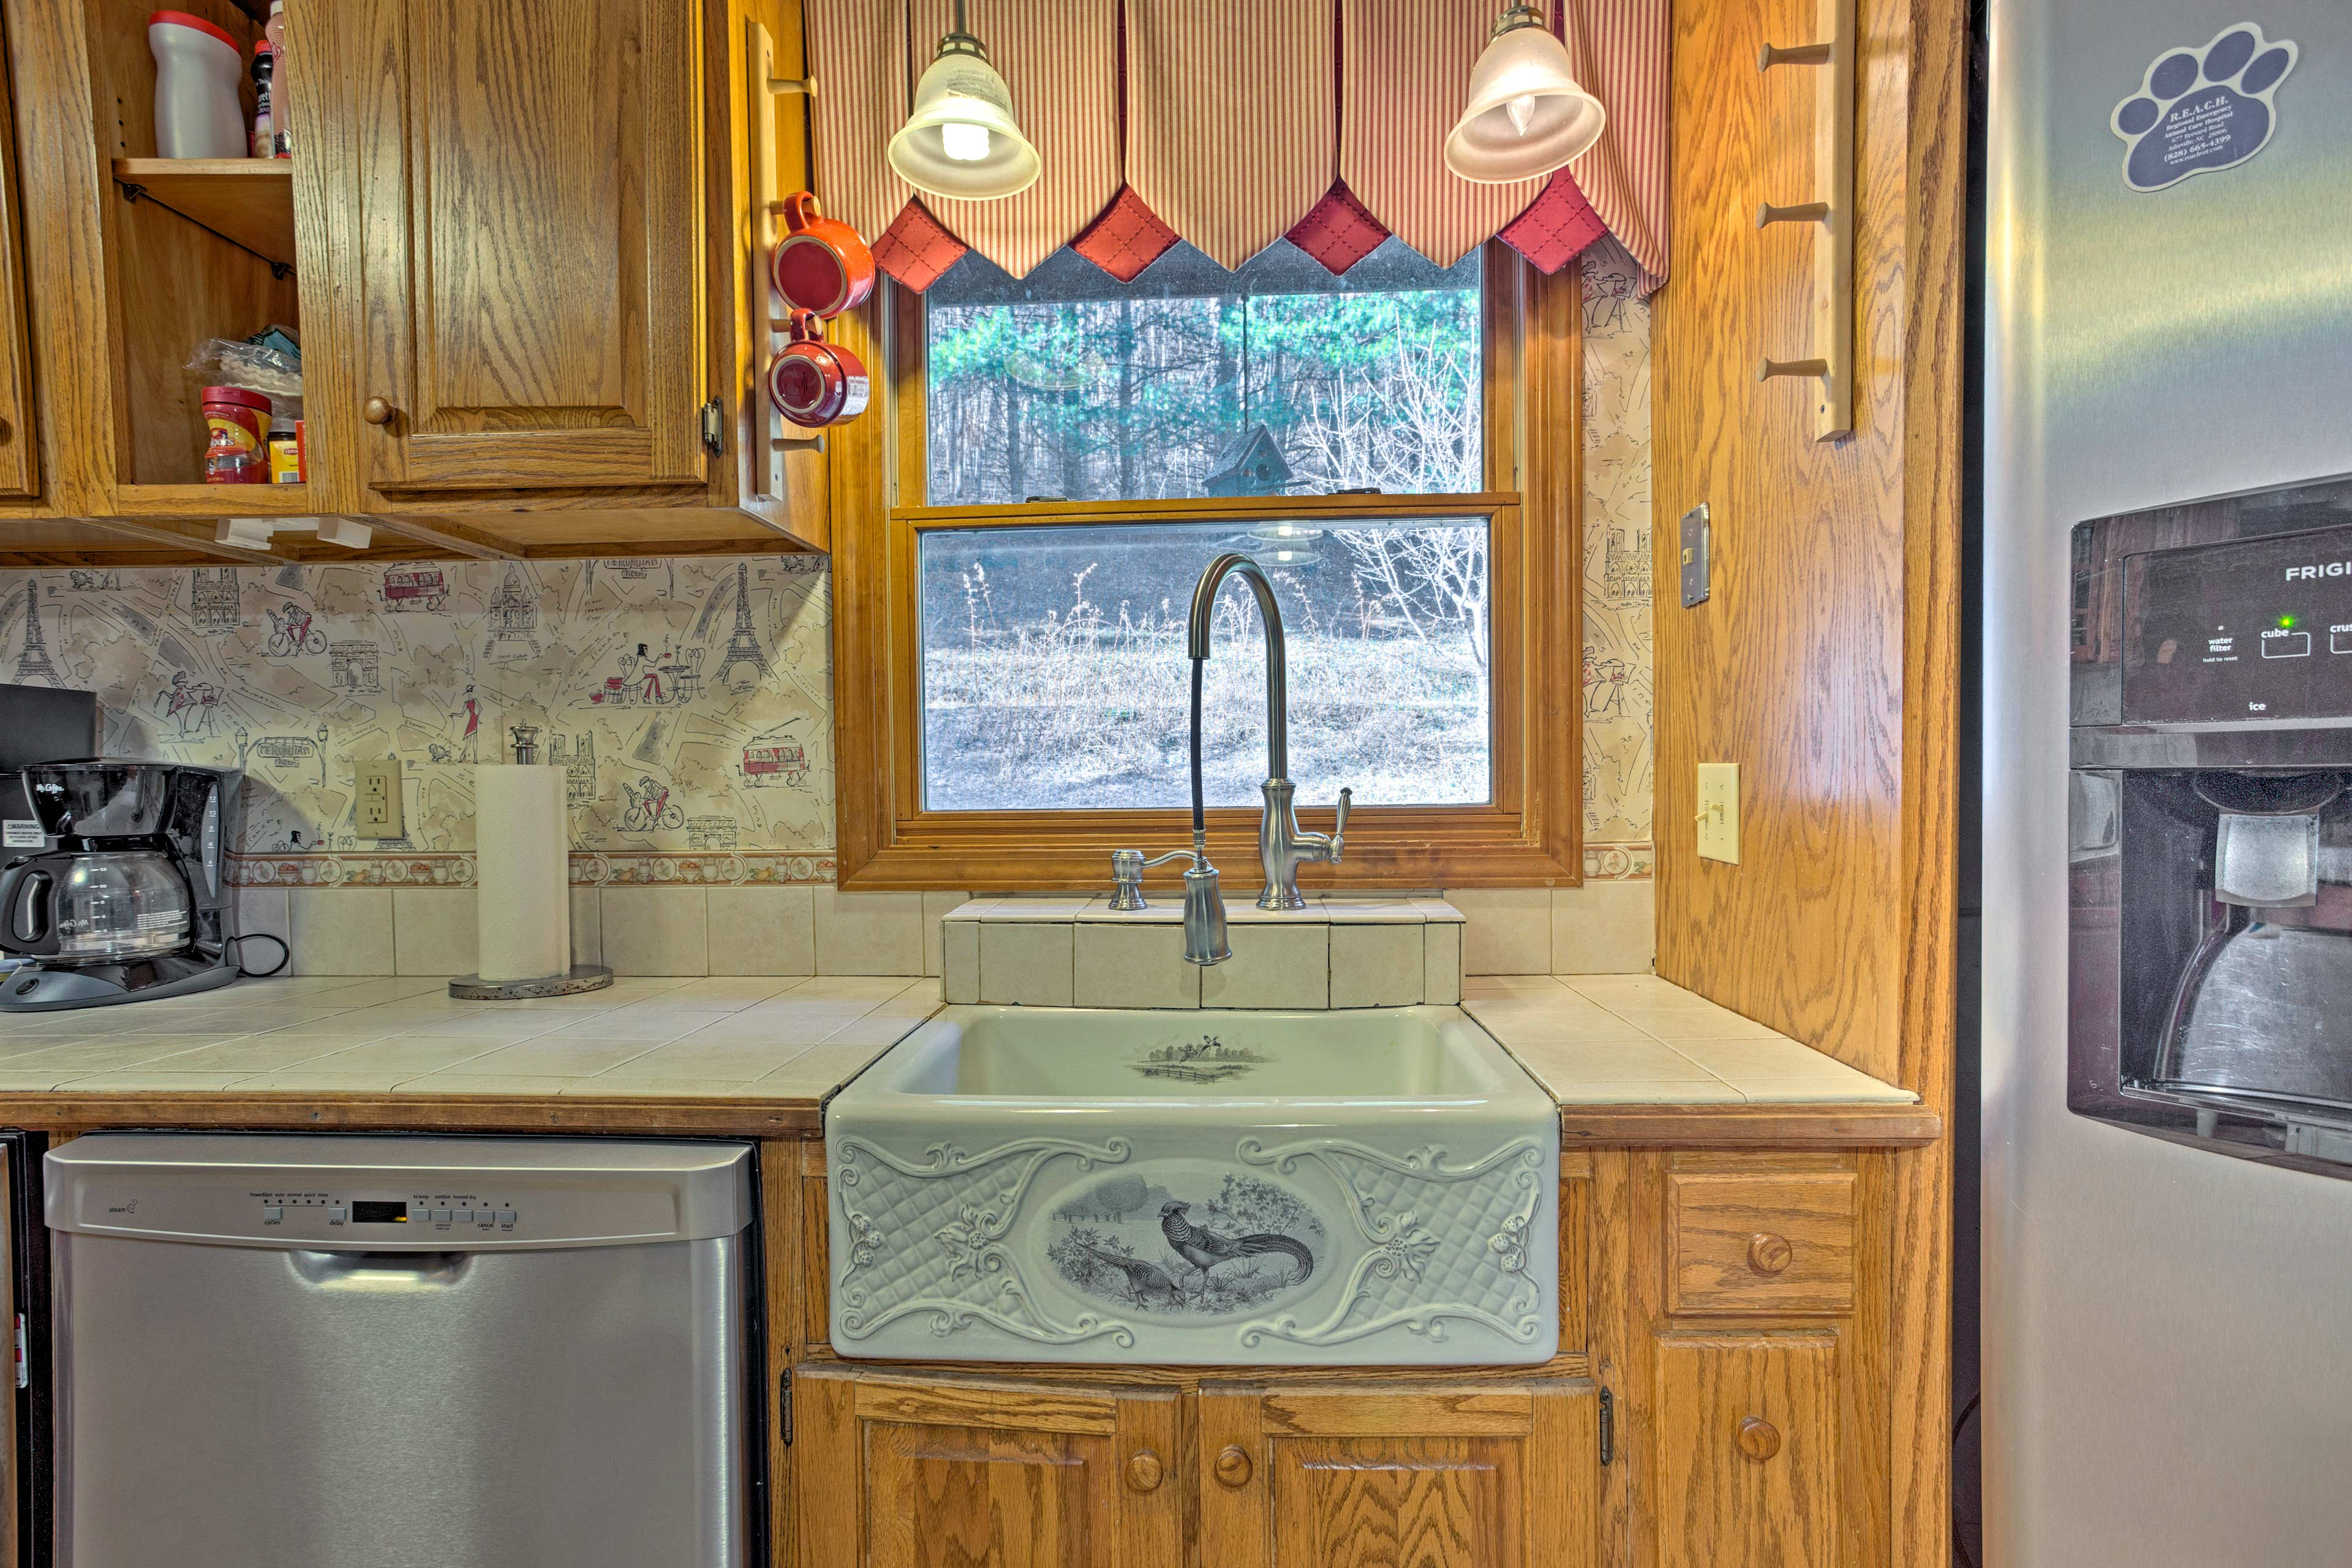 The space boasts stainless steel appliances.